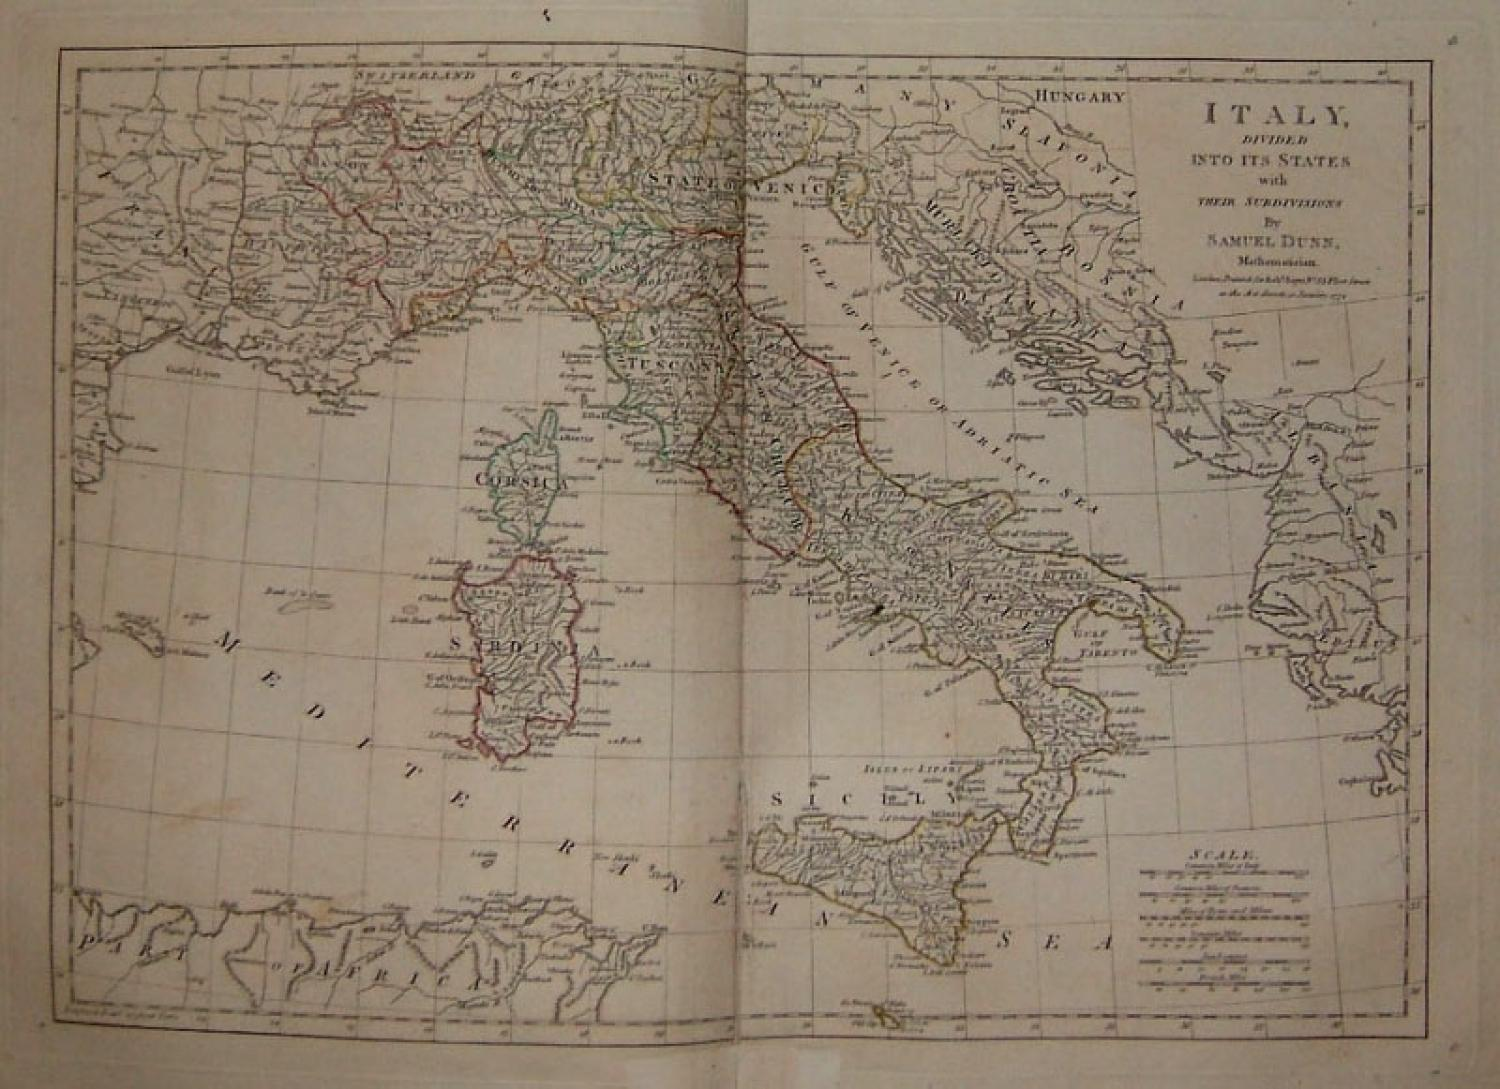 SOLD Italy, Divided Into Its States